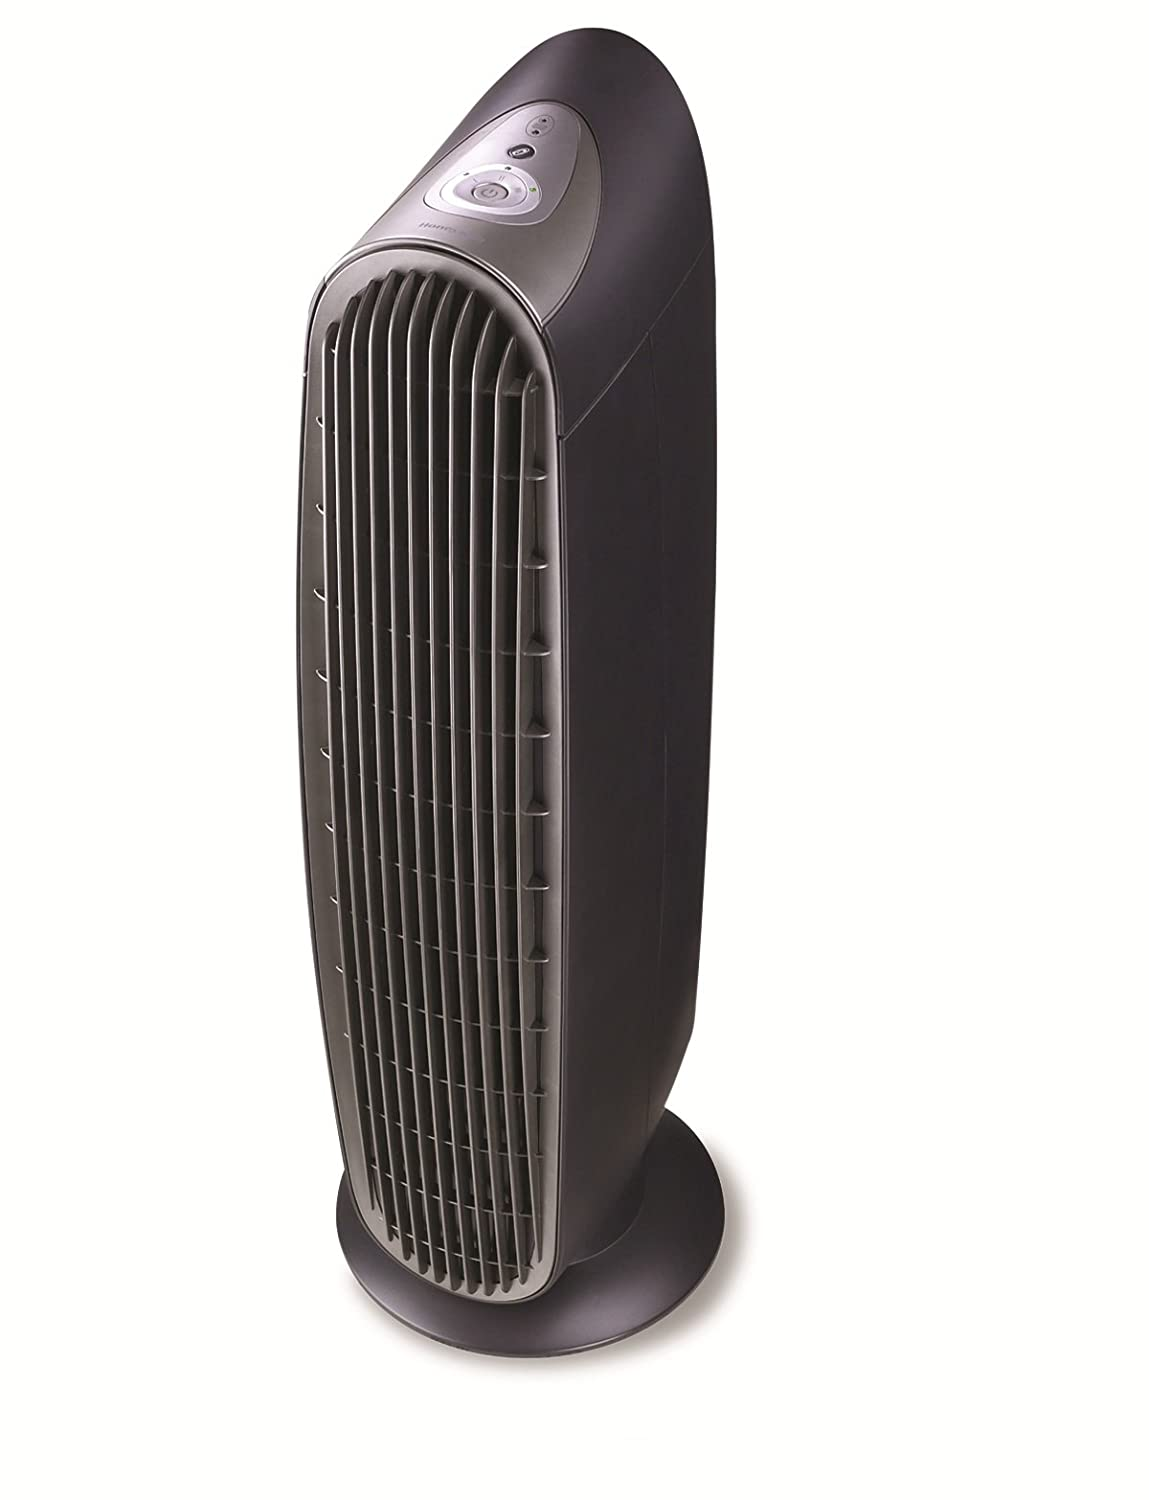 Top 7 Best Air Purifier For Pets Reviews in 2020 & Buying Guide 4